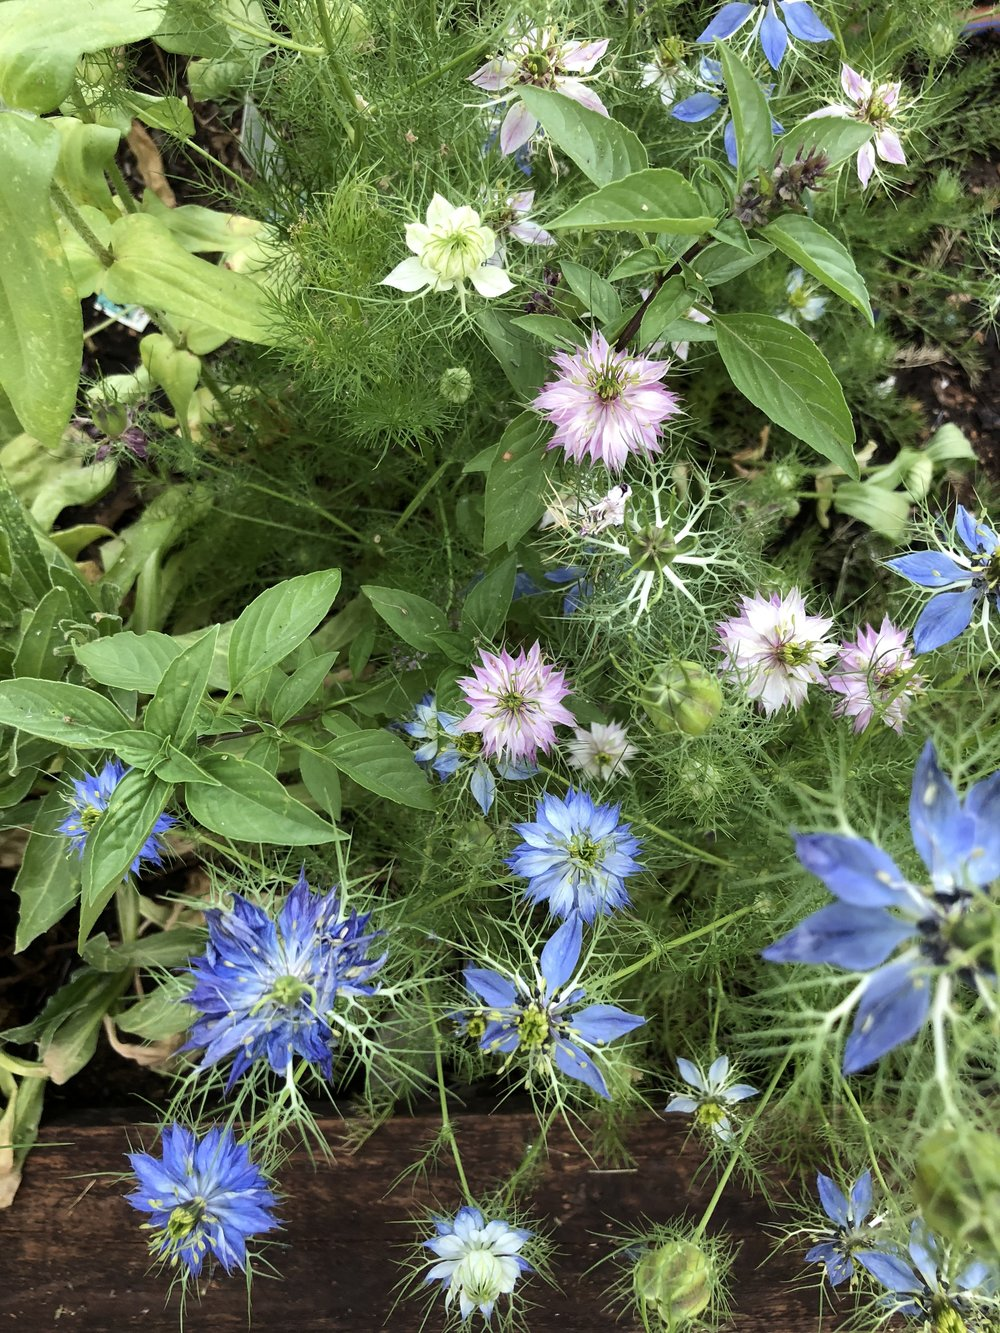 Nigella - Love in a Mist! So soft and detailed. I love saving the seed pods for drying.